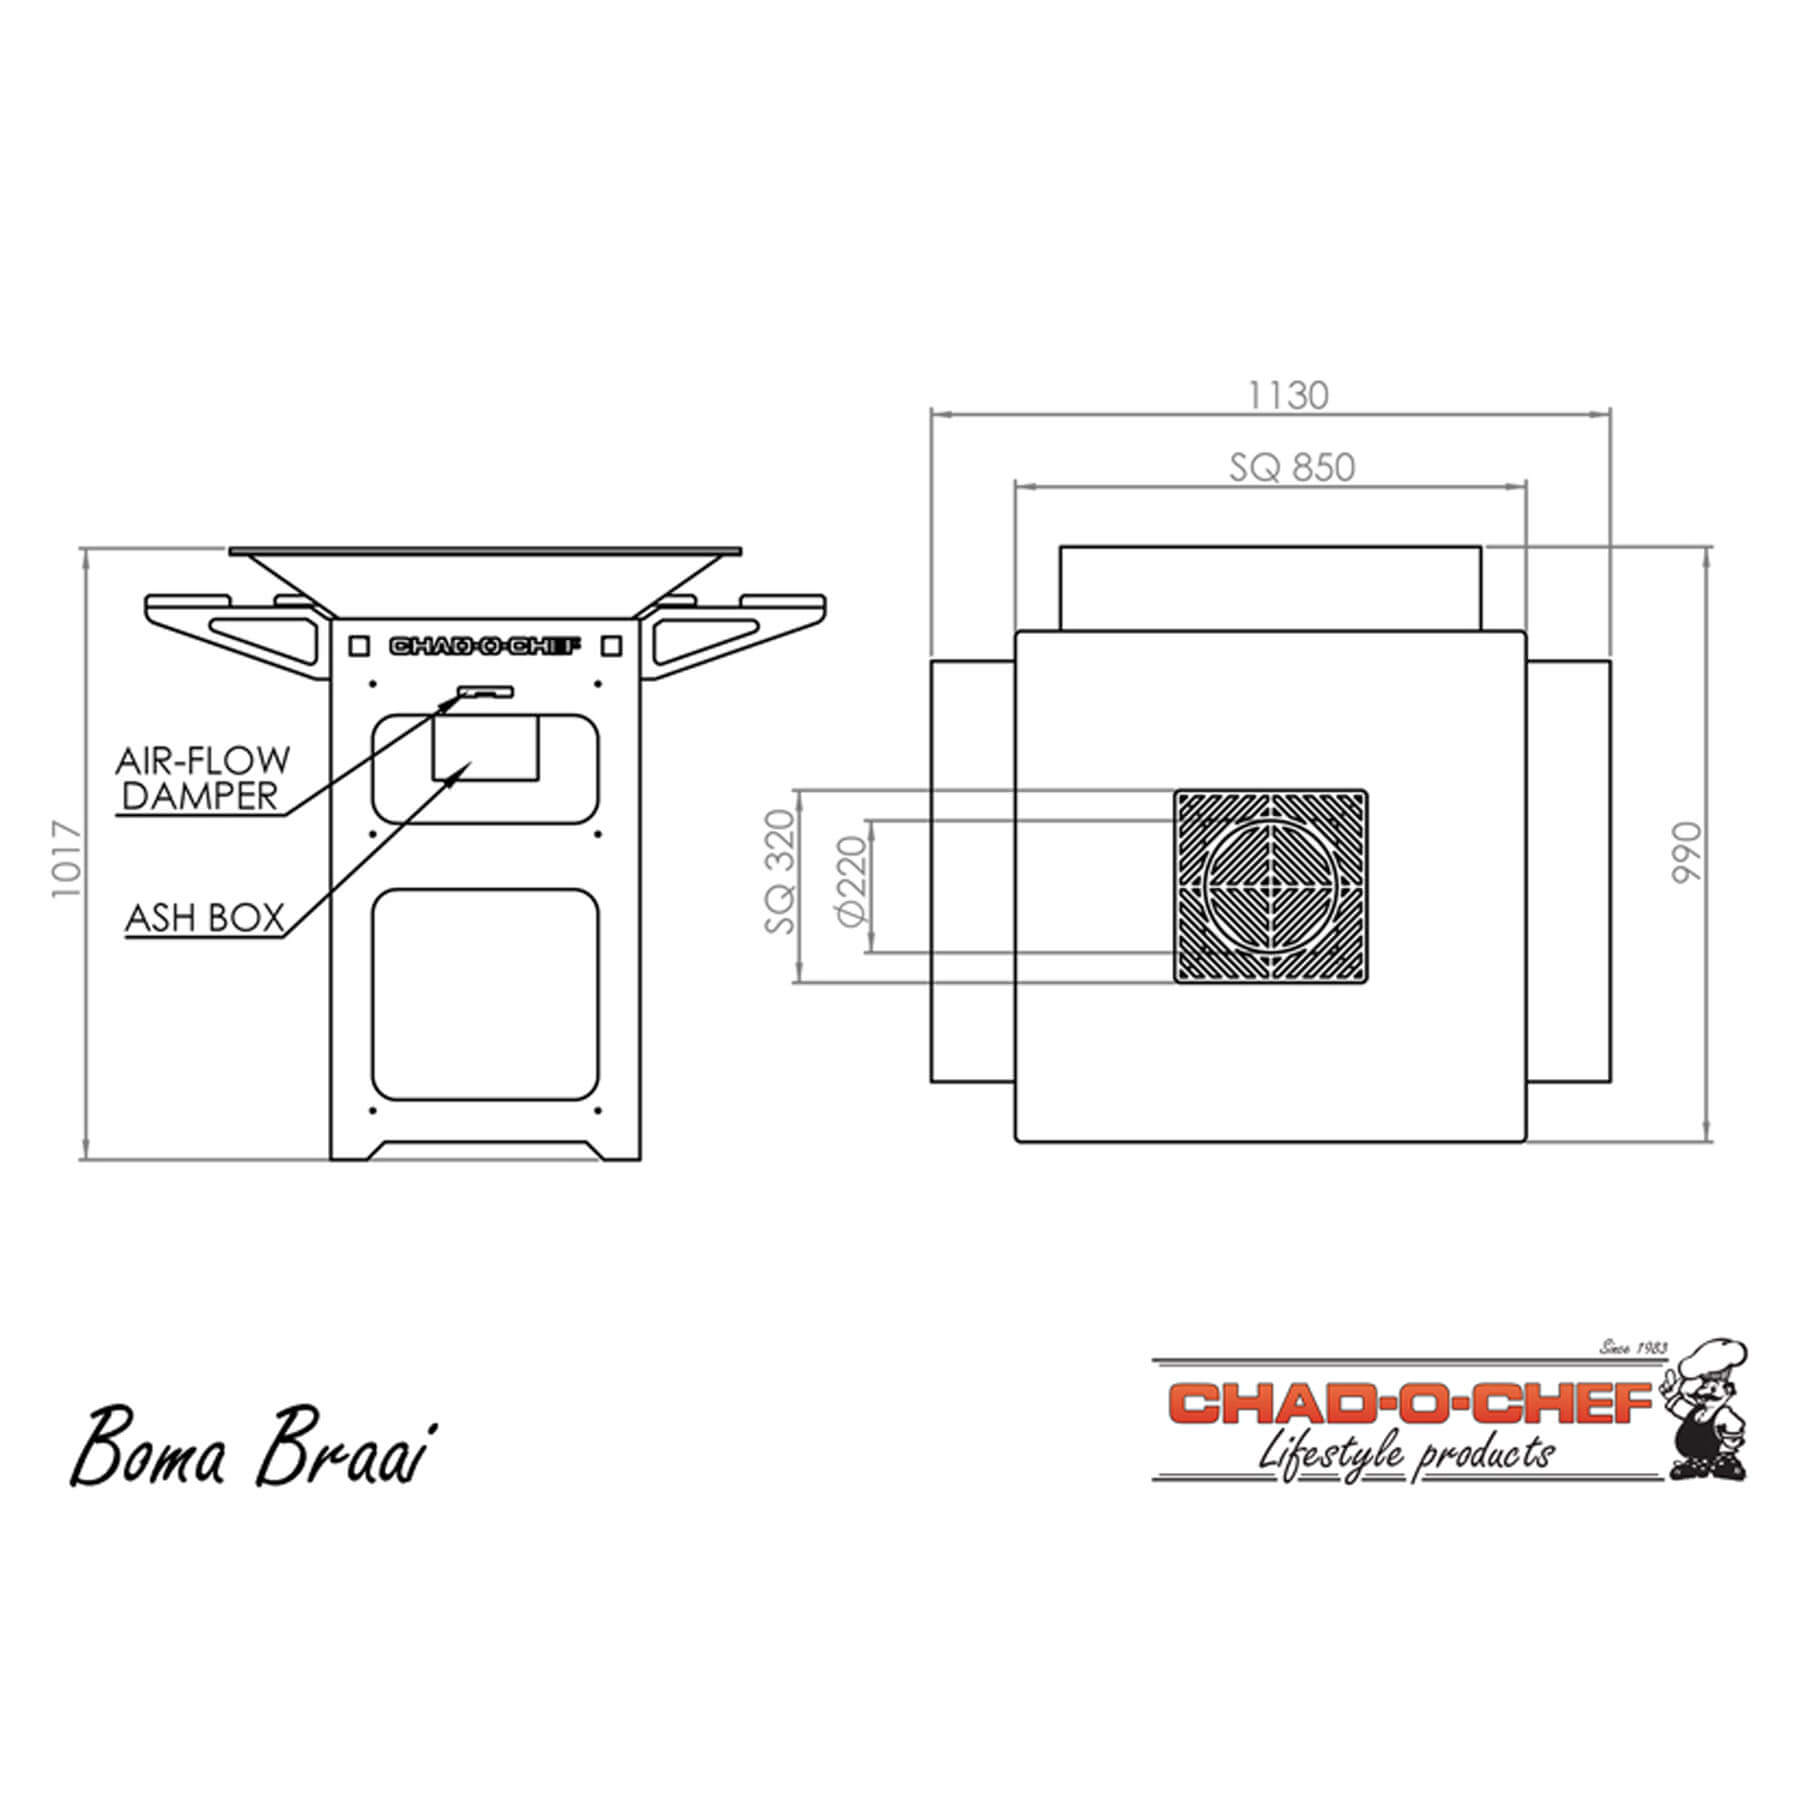 Technical-Specifications-Boma-Braai